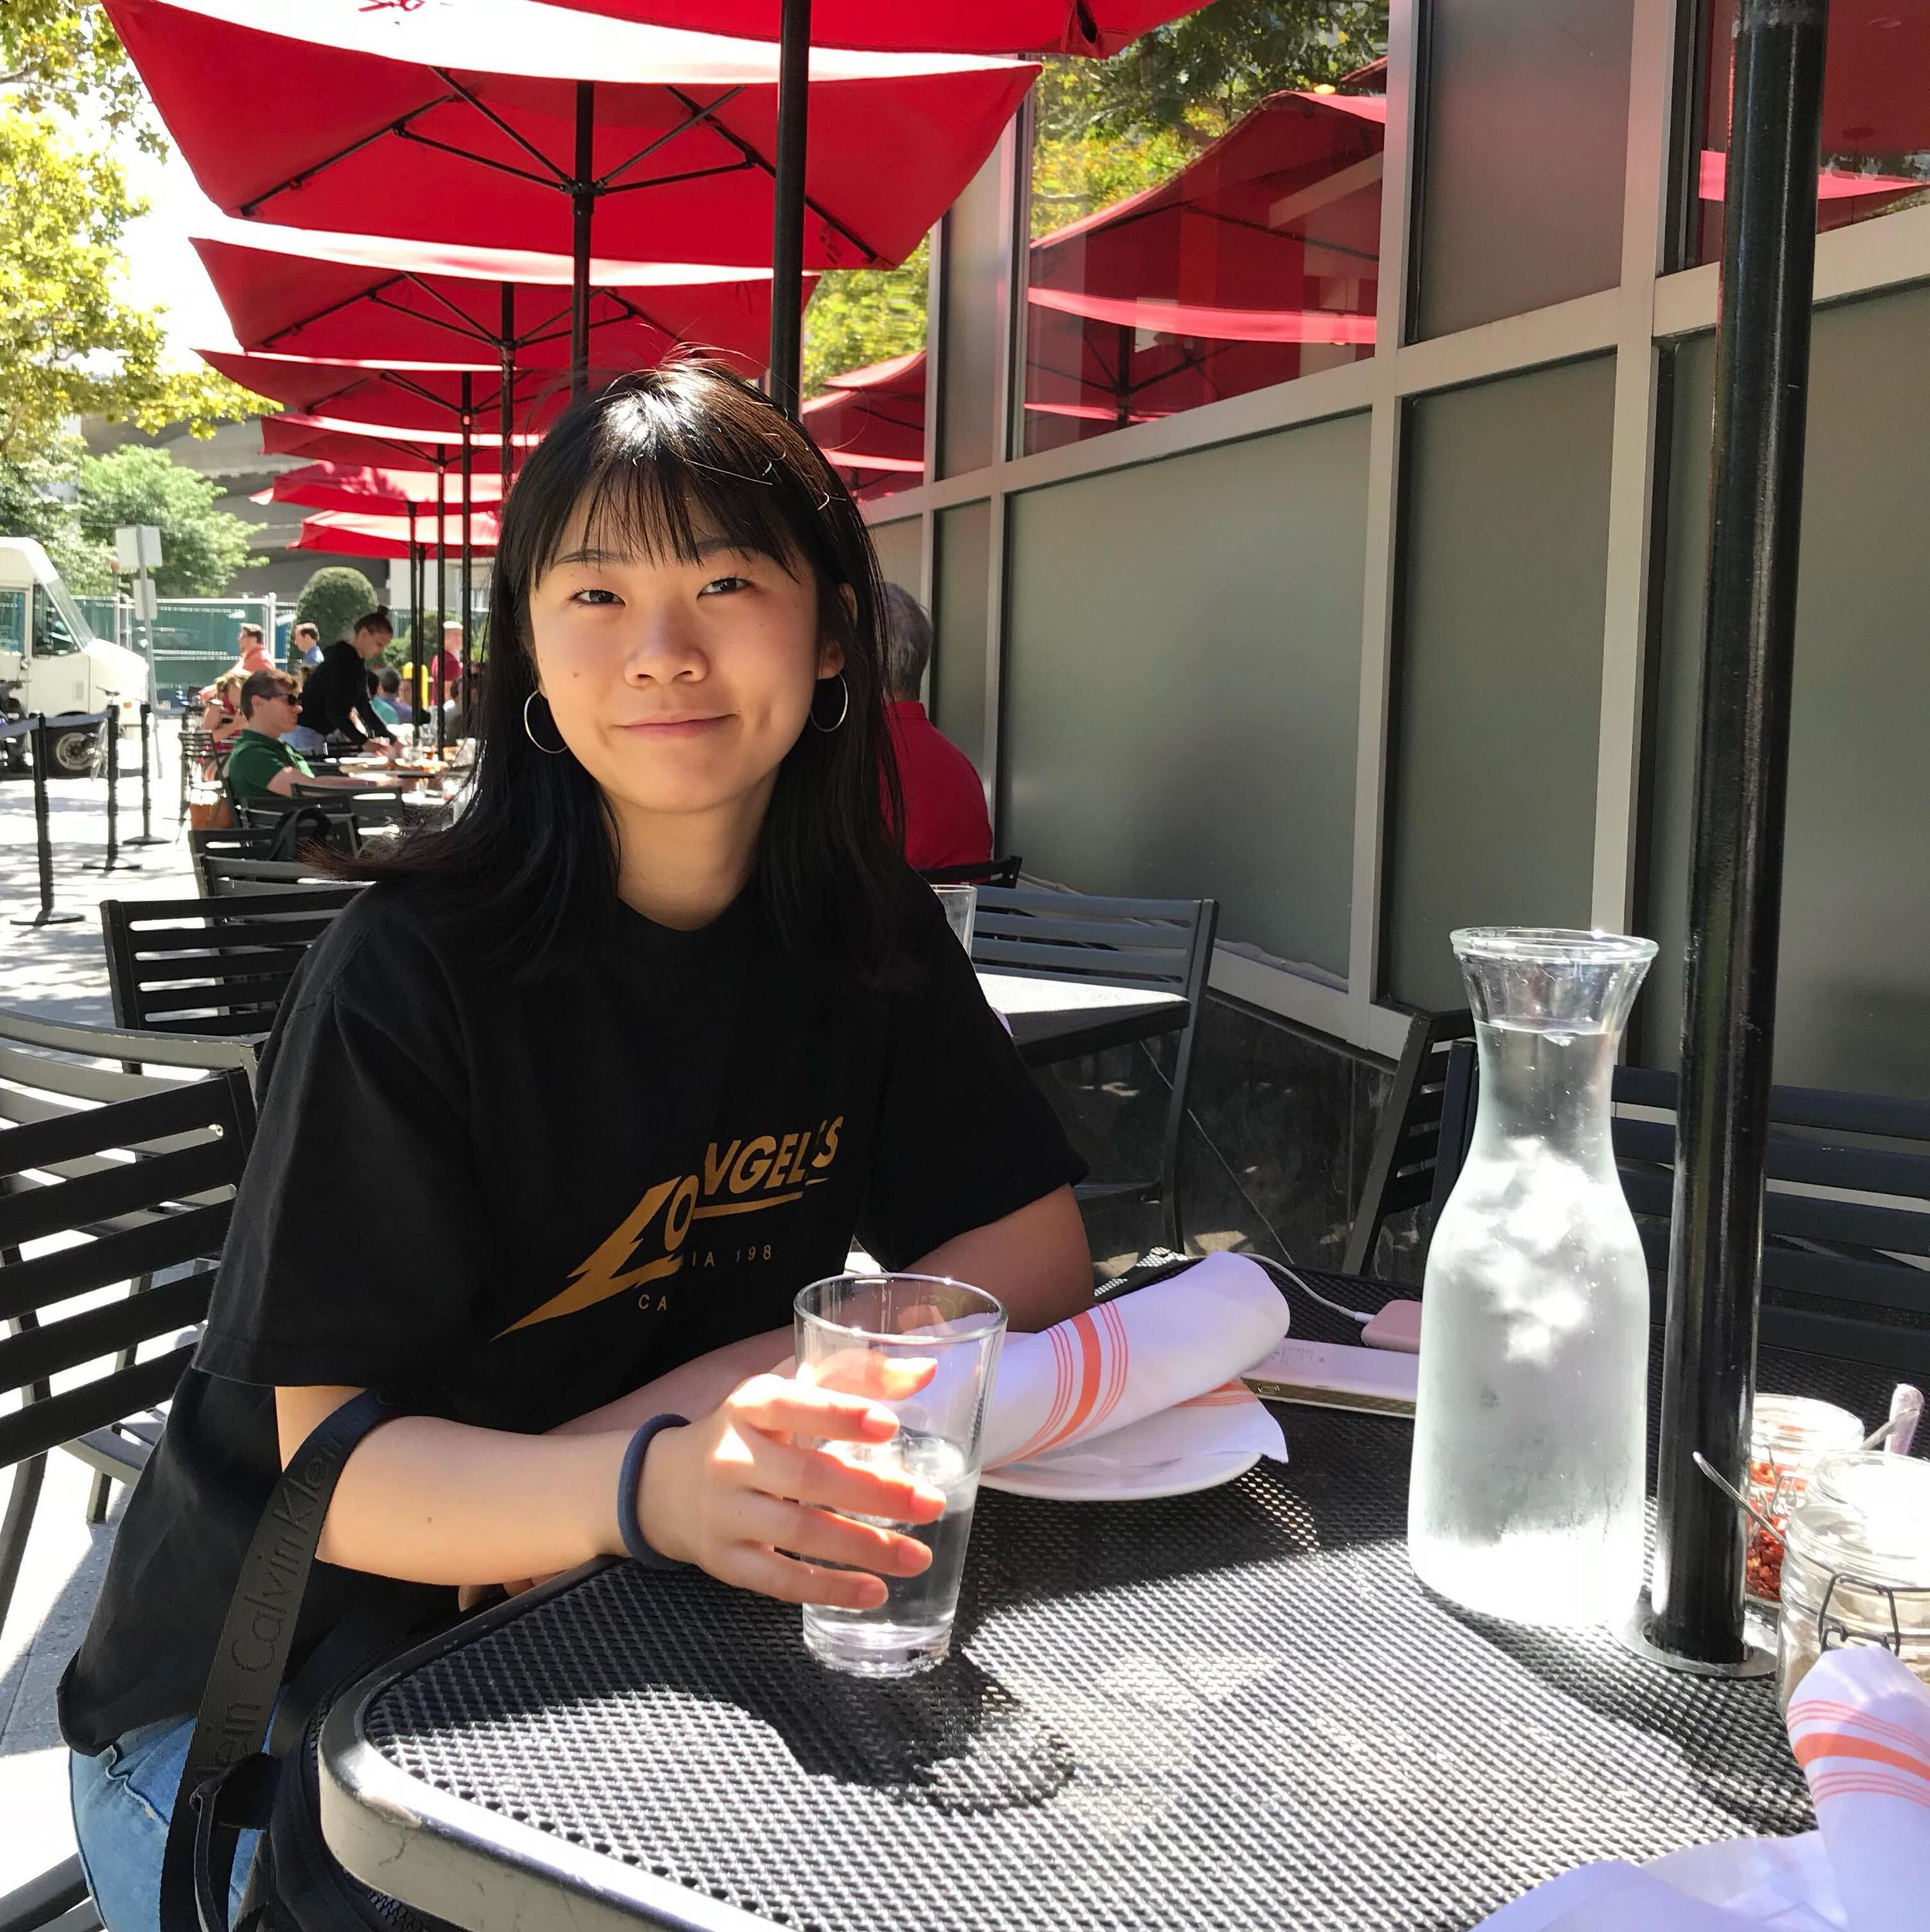 Name : Lucy Wang   Graduation year:  2023   Majors:  Electrical & Computer Engineering   Interests : I'm not sure what specific area within my major interests me the most, but I definitely enjoy coding, physics, and doing math! I love playing sports, especially badminton and volleyball, and going on outdoor adventures! I also LOVE eating good food, getting boba, and watching Netflix/Youtube in my free time.   Project area:  I'm interested in projects that involve app development, software engineering, or just anything that's helpful to the community!   Fun fact : I had two chinchillas before I moved to New York City for high school. They were the cutest.